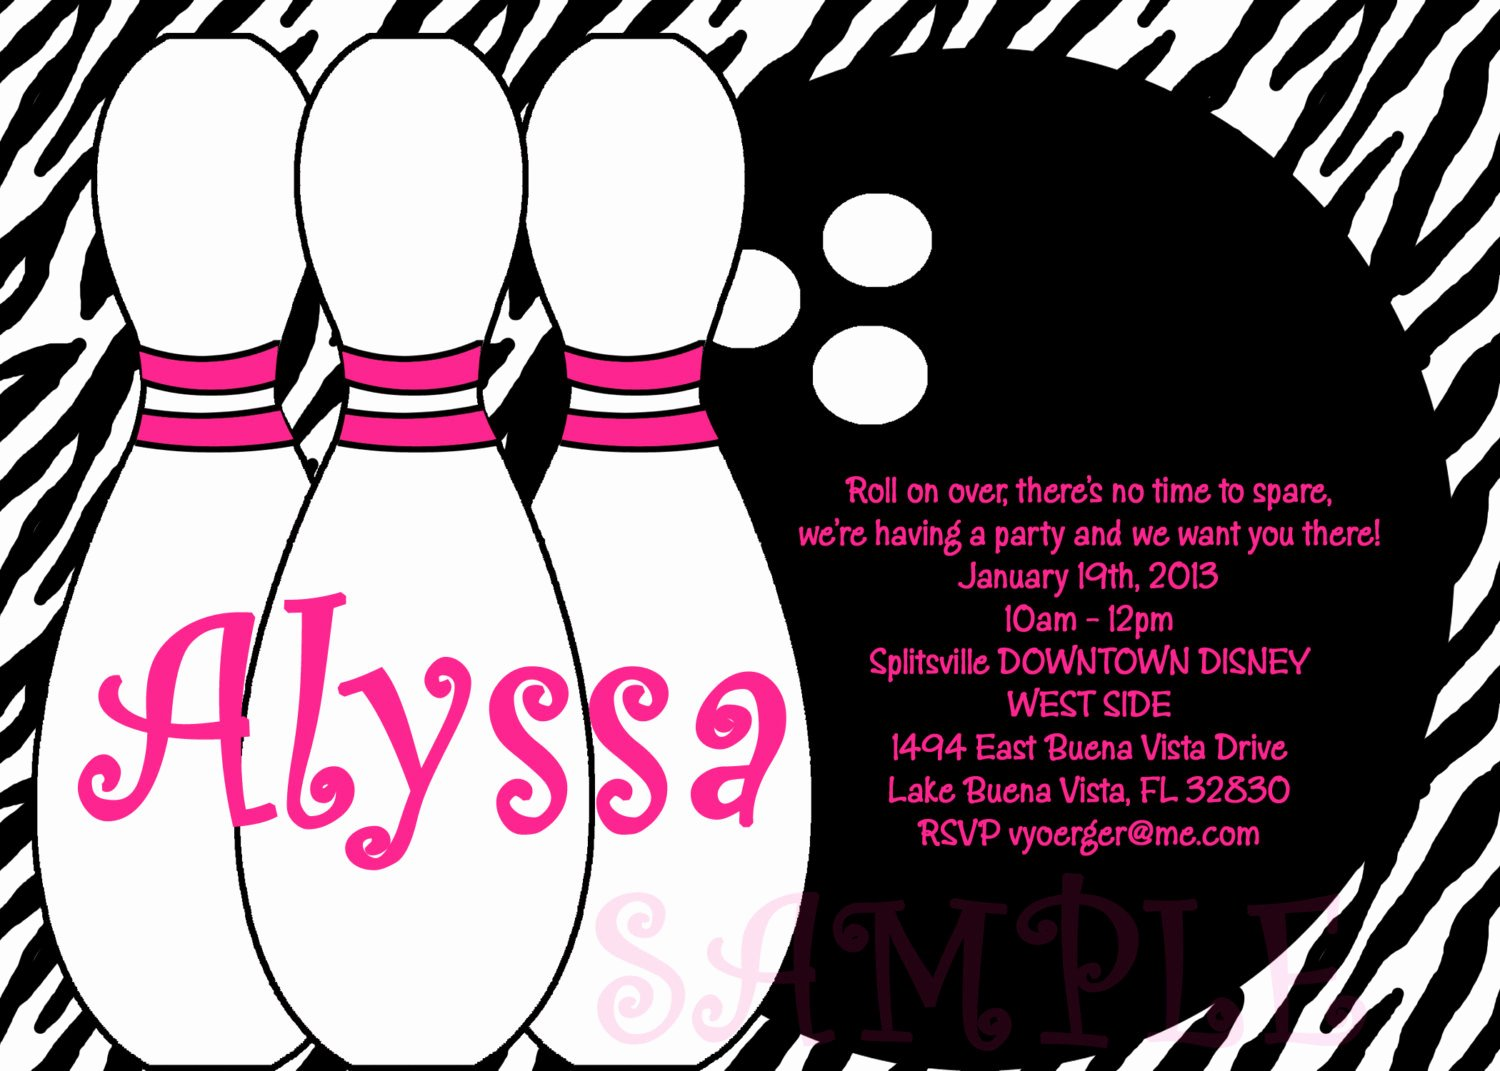 Bowling Party Invitation Template Elegant Birthday Invitations Bowling Party Invitations Templates